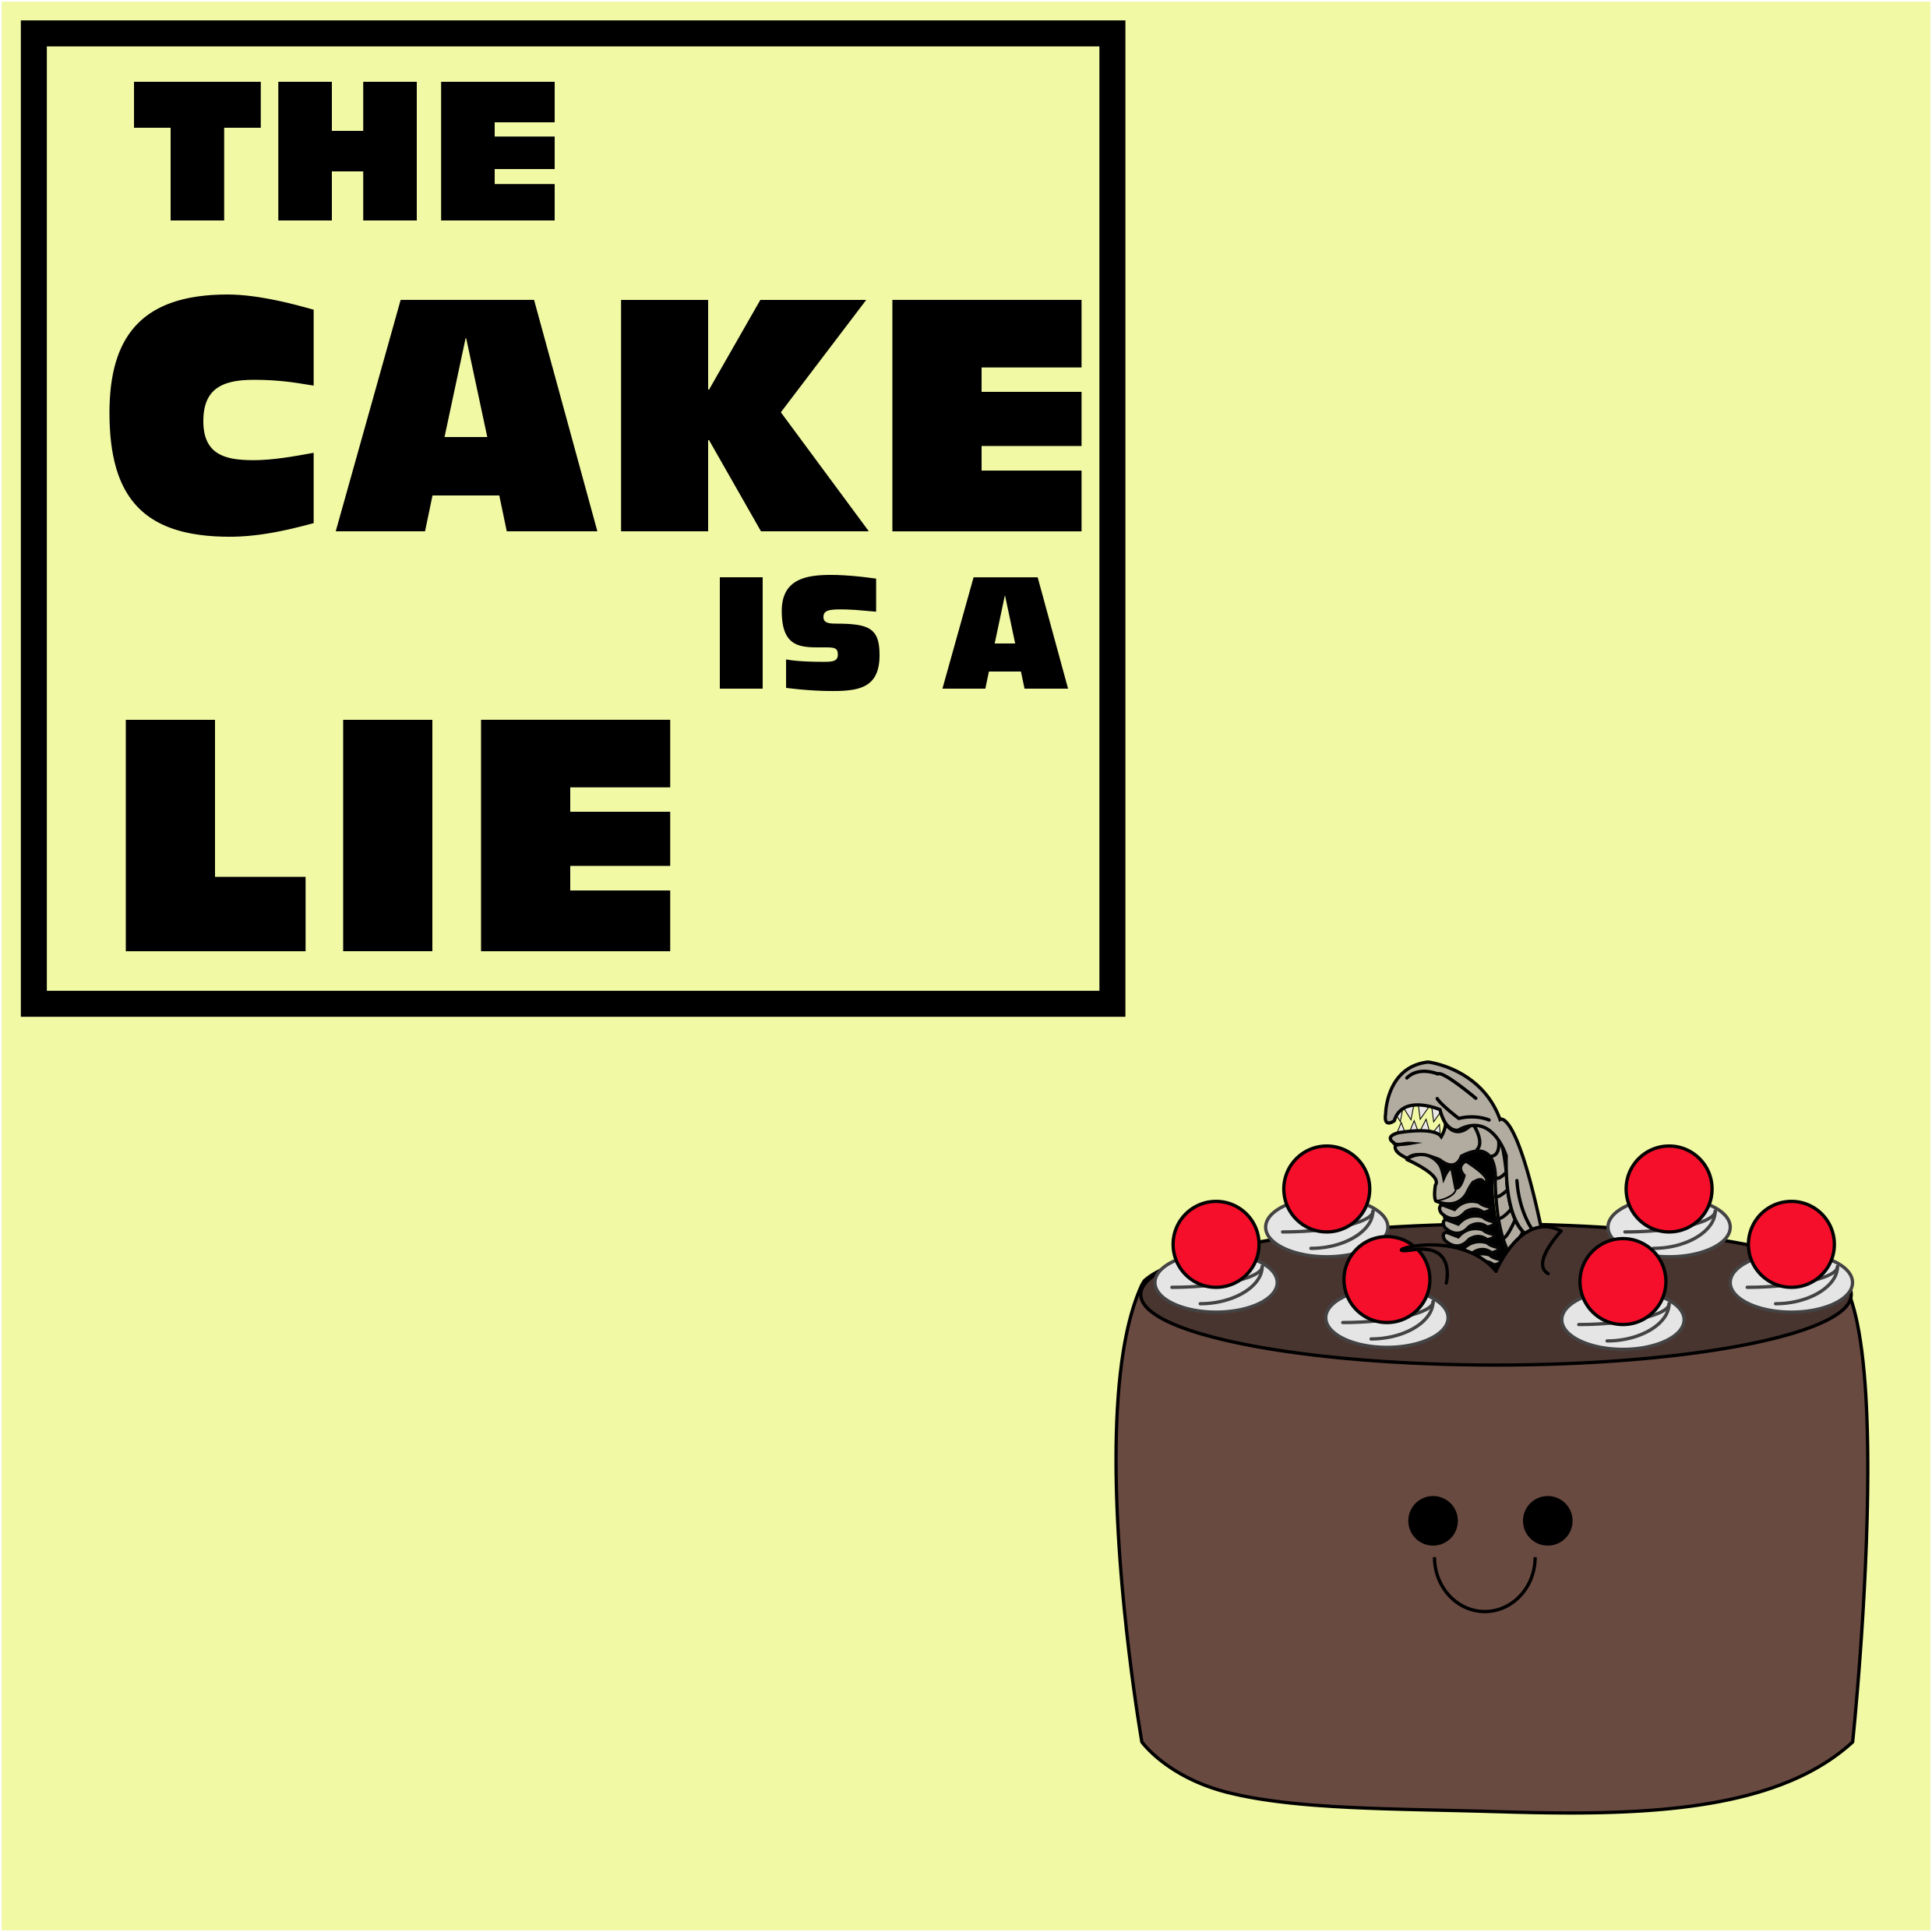 the cake is a lie by Mprodution on Newgrounds